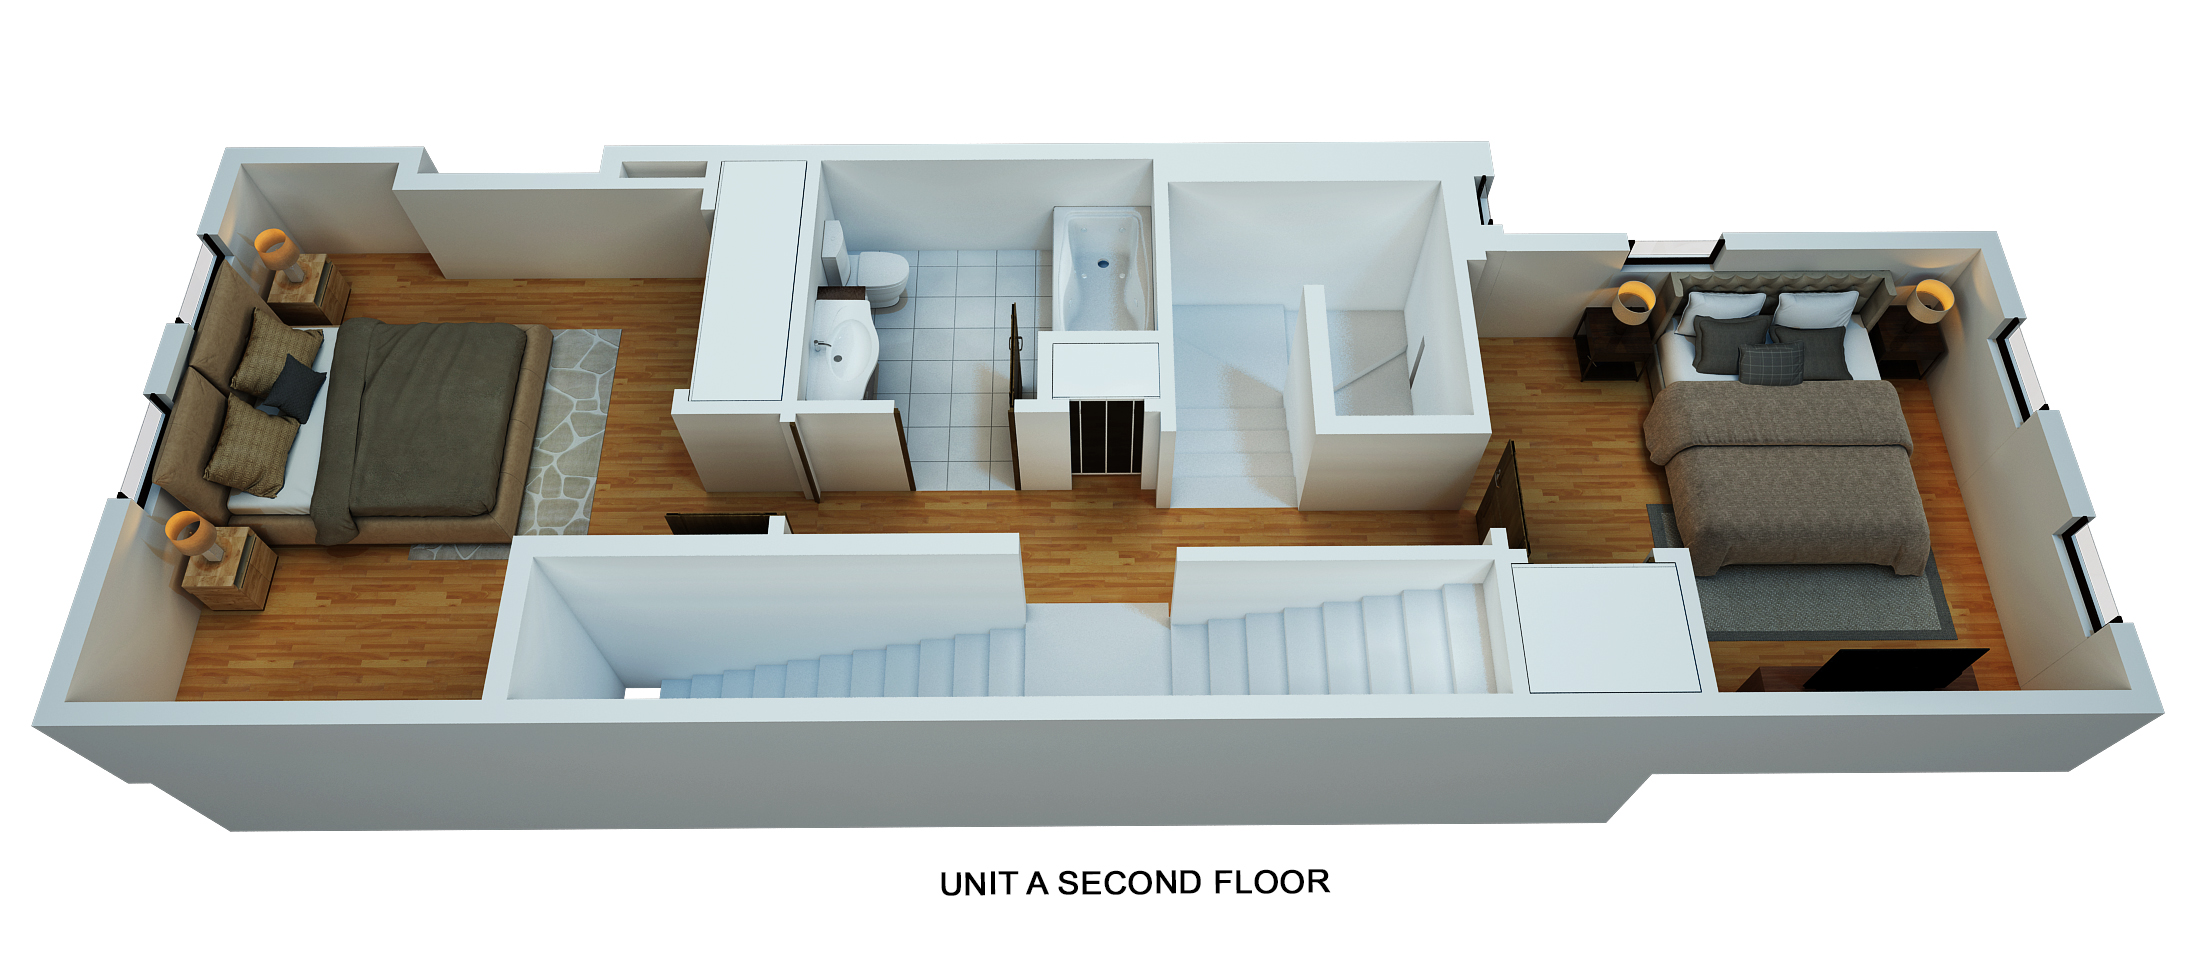 5503-SecondfloorPlan.jpg